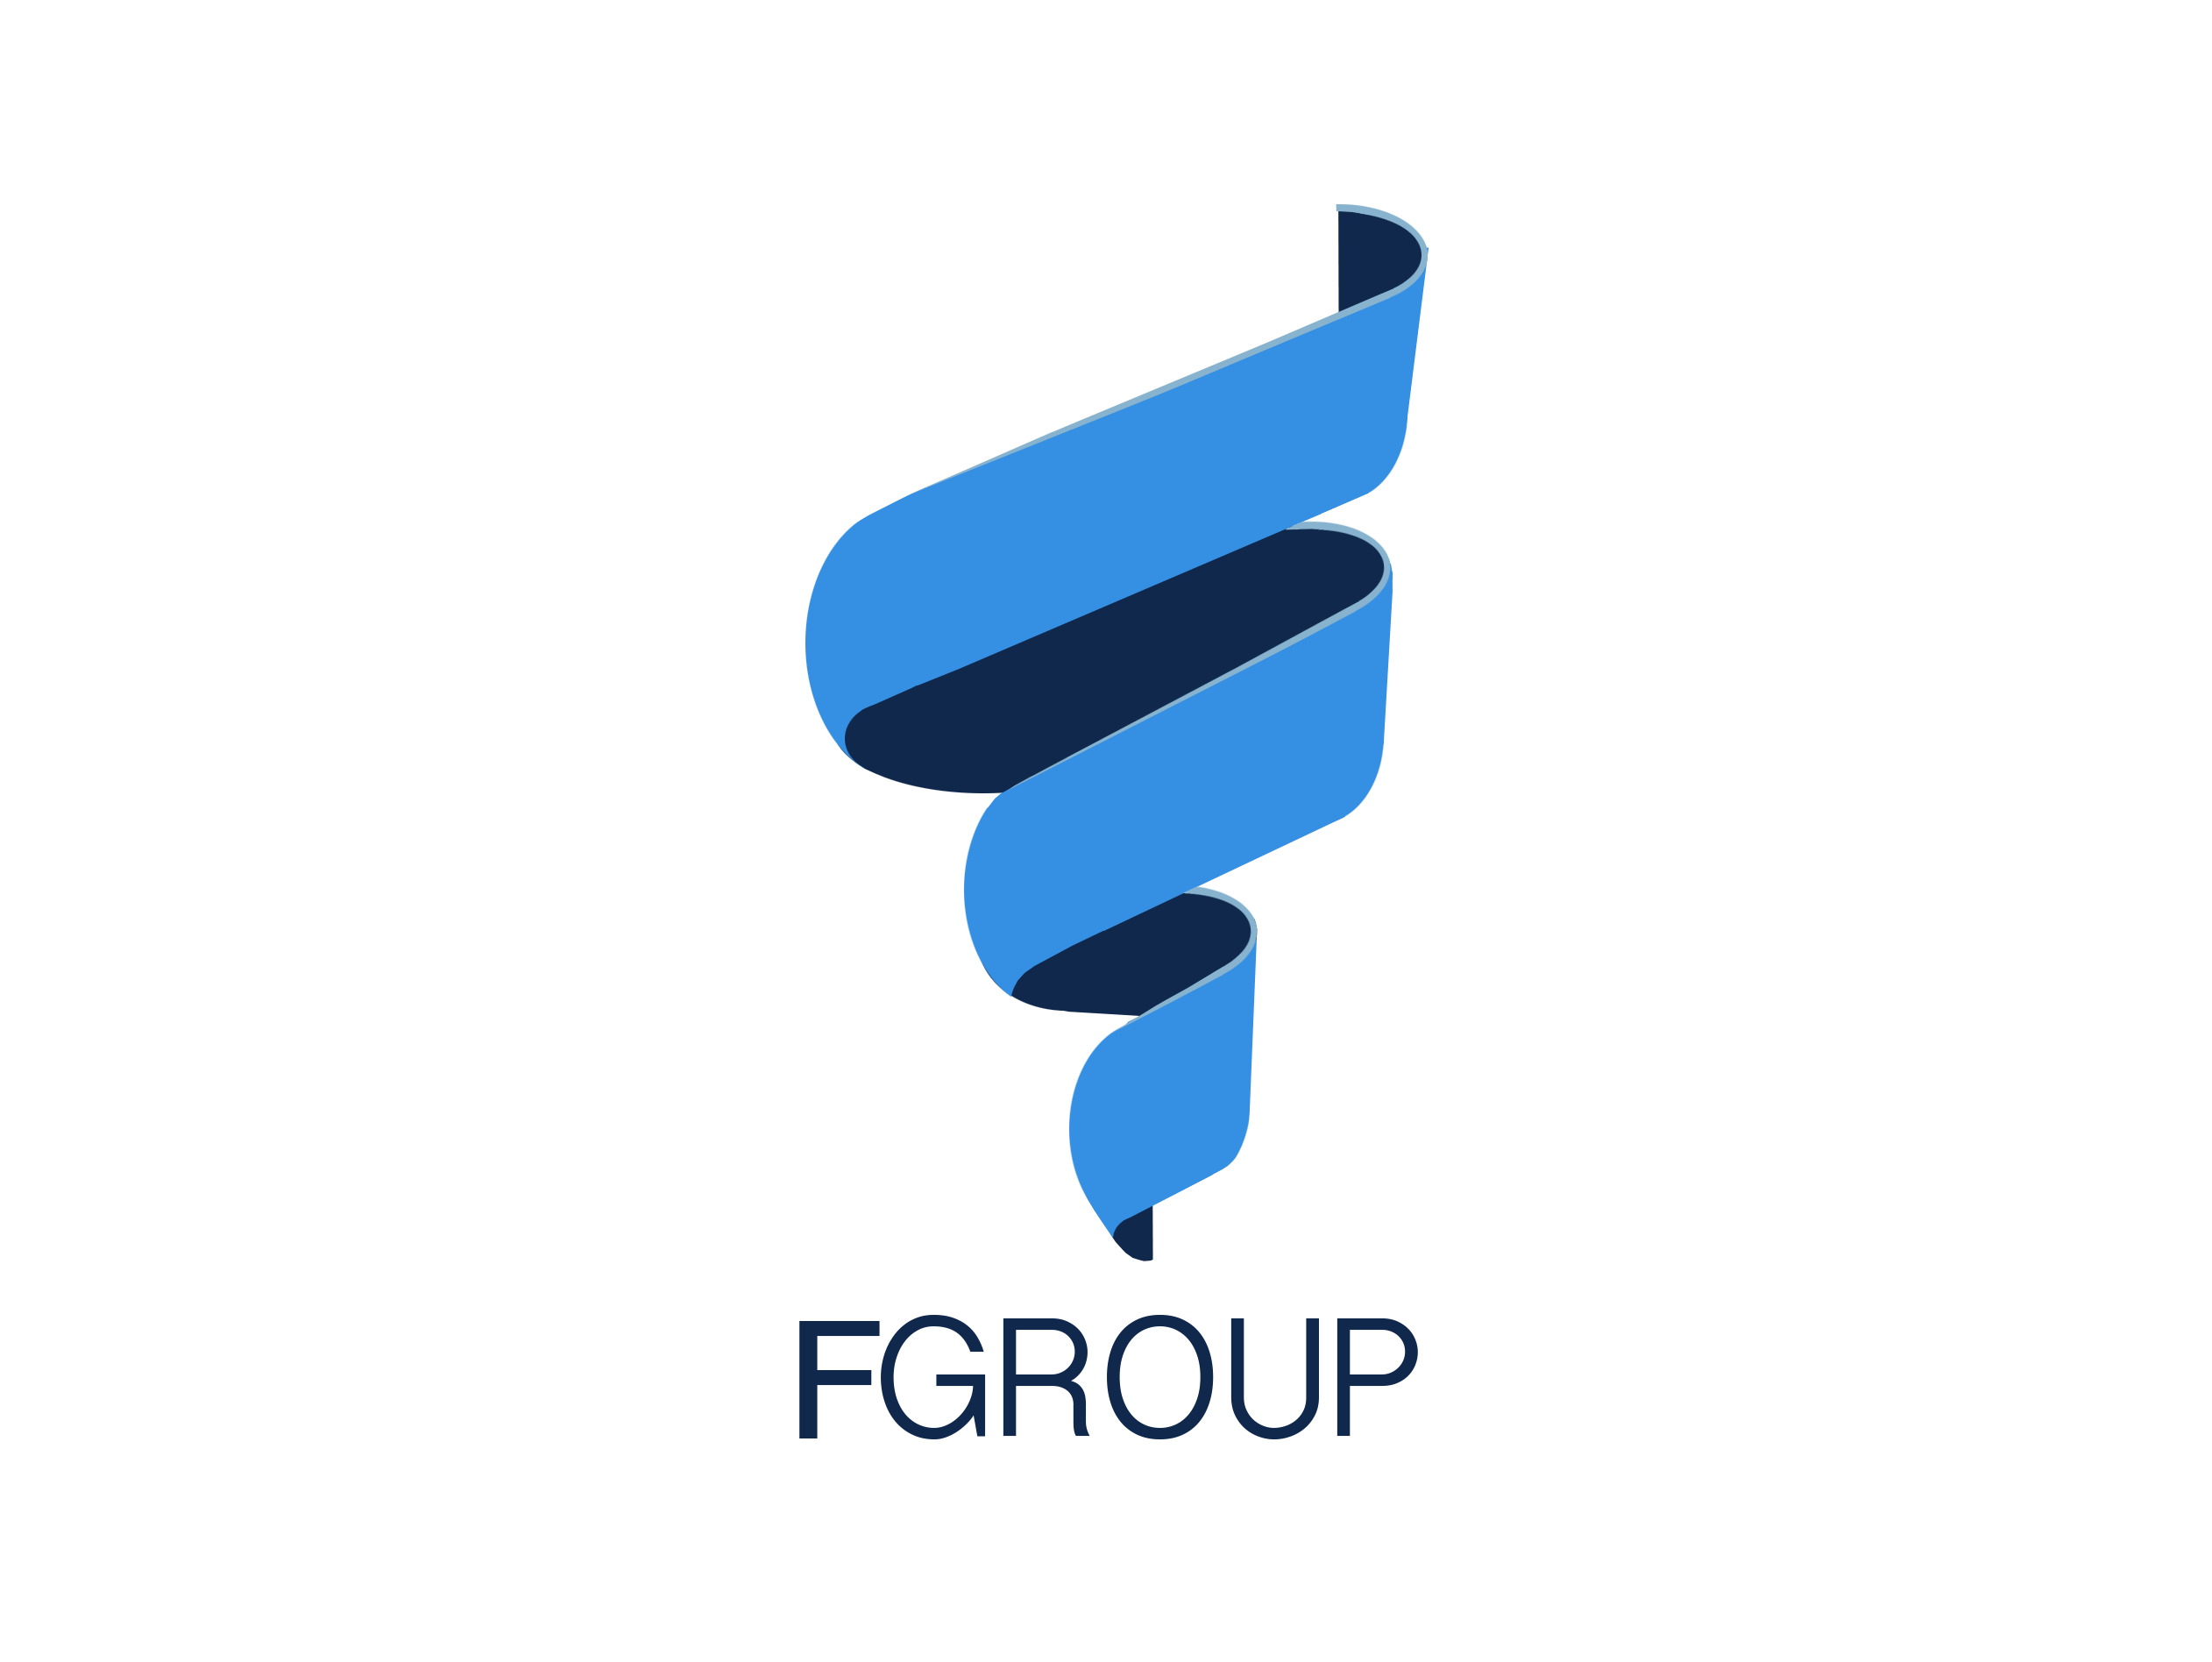 @FgroupMarketing